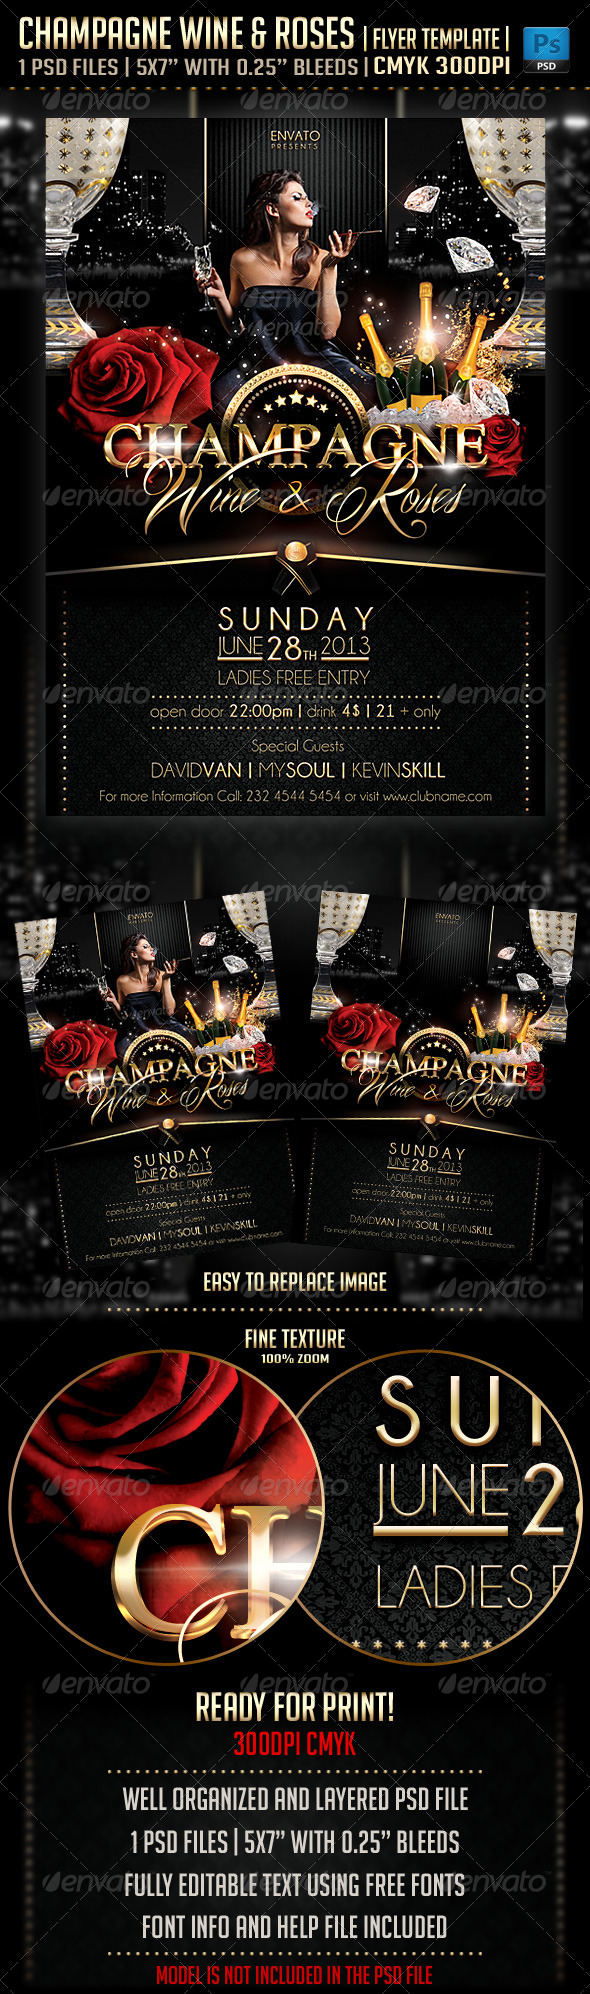 Champagne Wine & Roses Flyer Template - Clubs & Parties Events